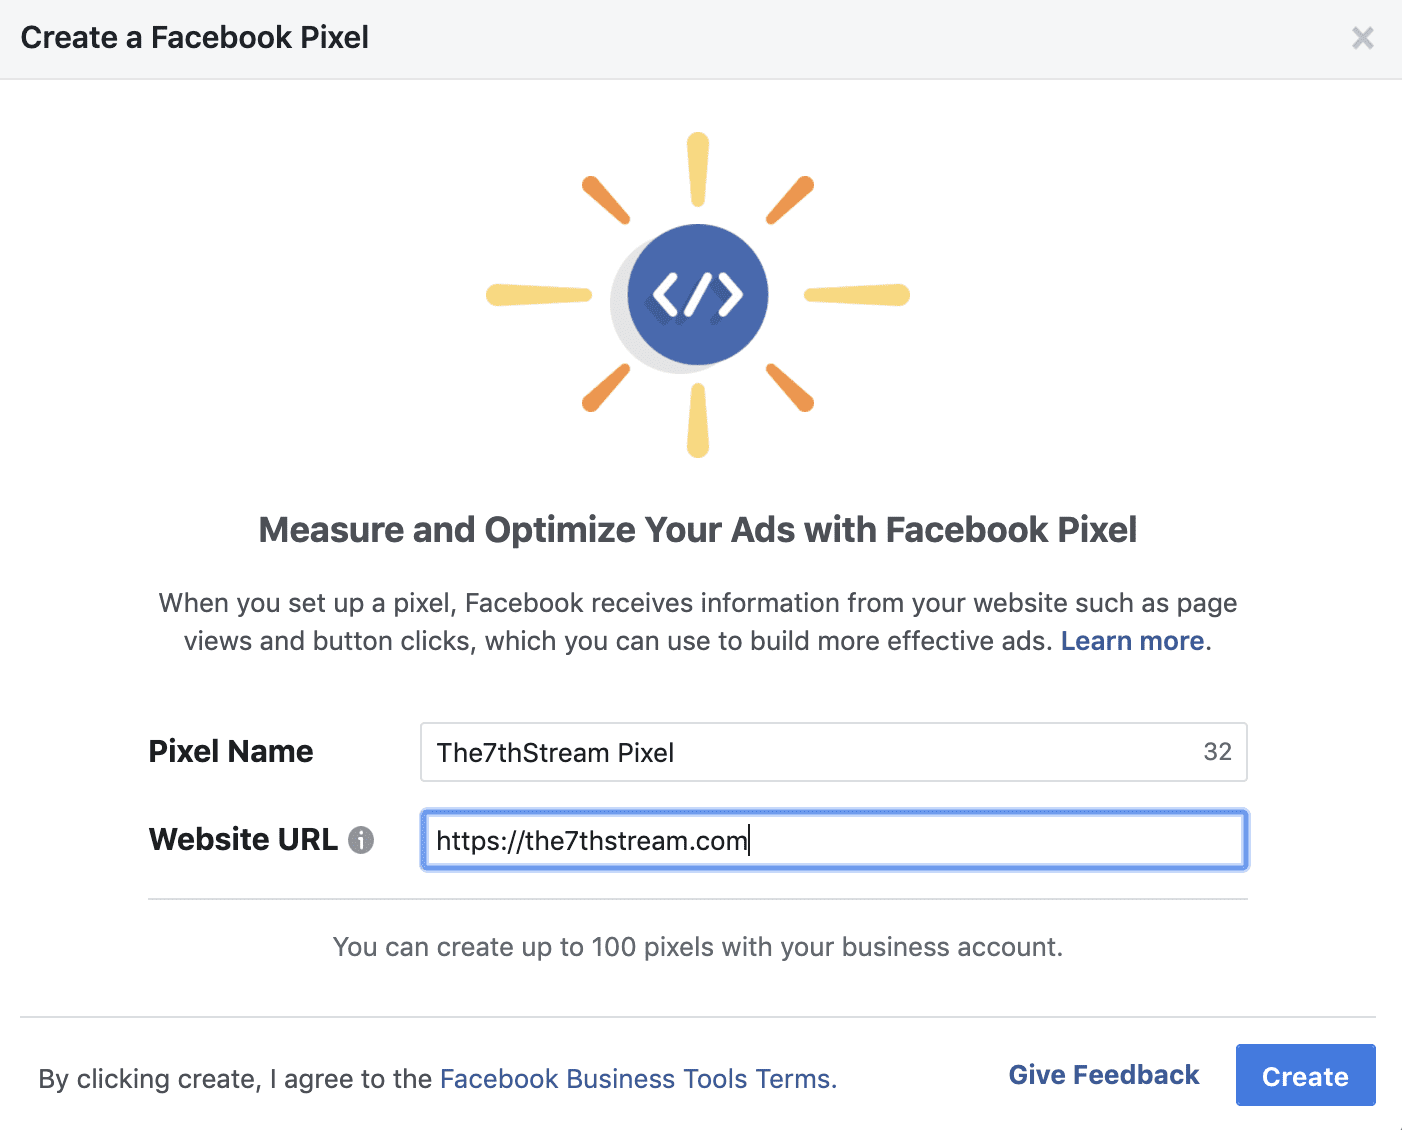 Sample of the starting page for setting up a Facebookf Pixel